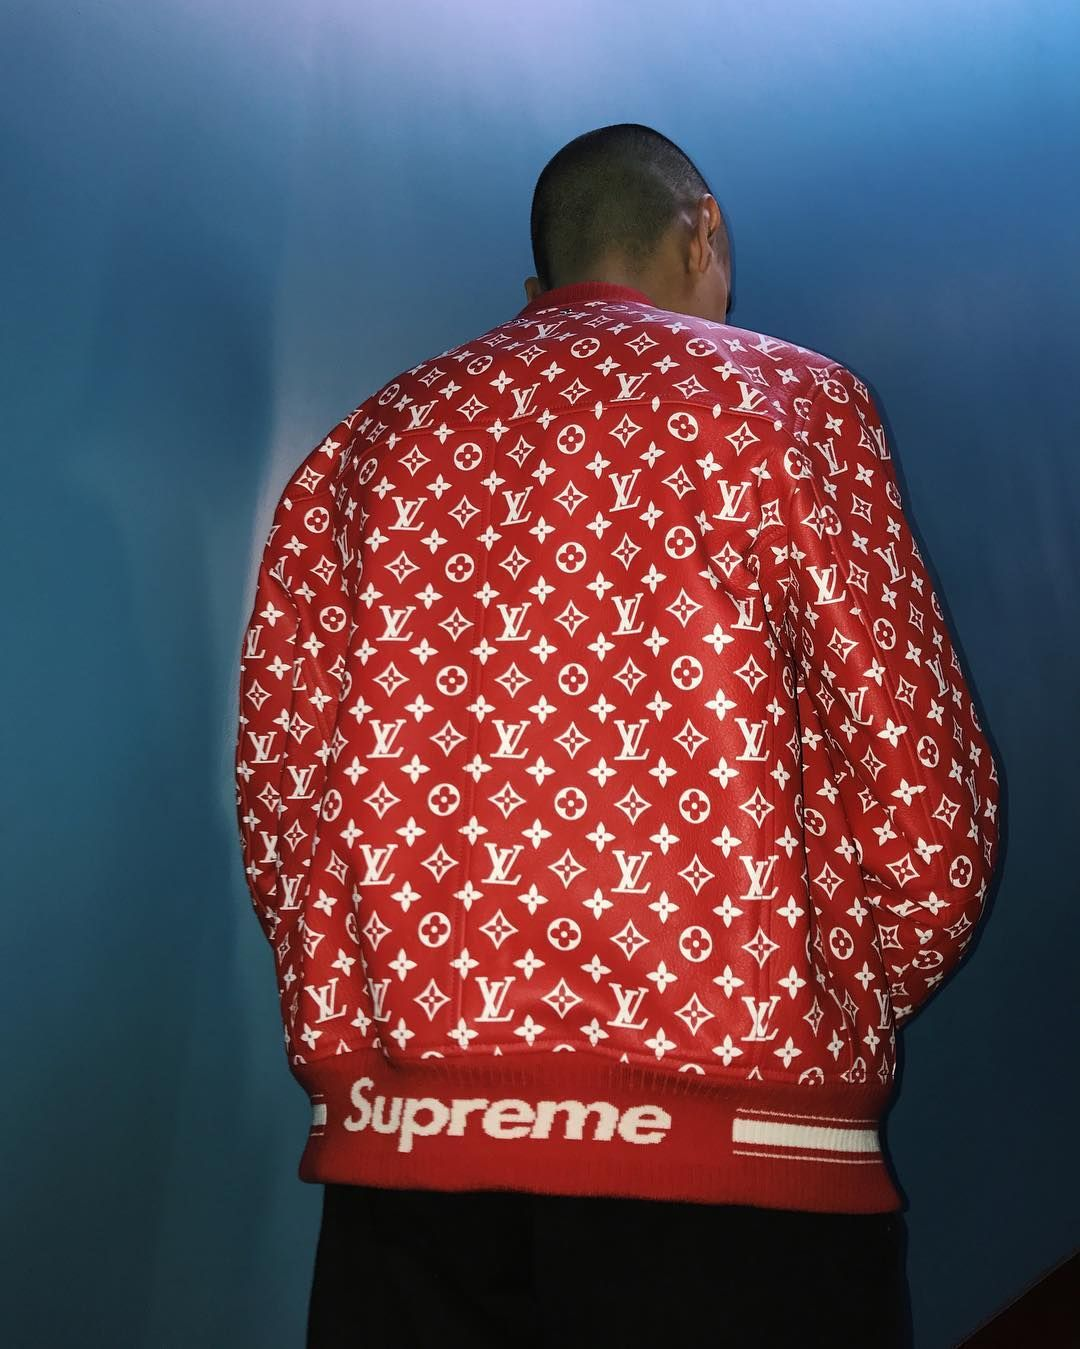 ea68355441d Supreme x Louis Vuitton Is Real and Here s What You Need to Know (Update)